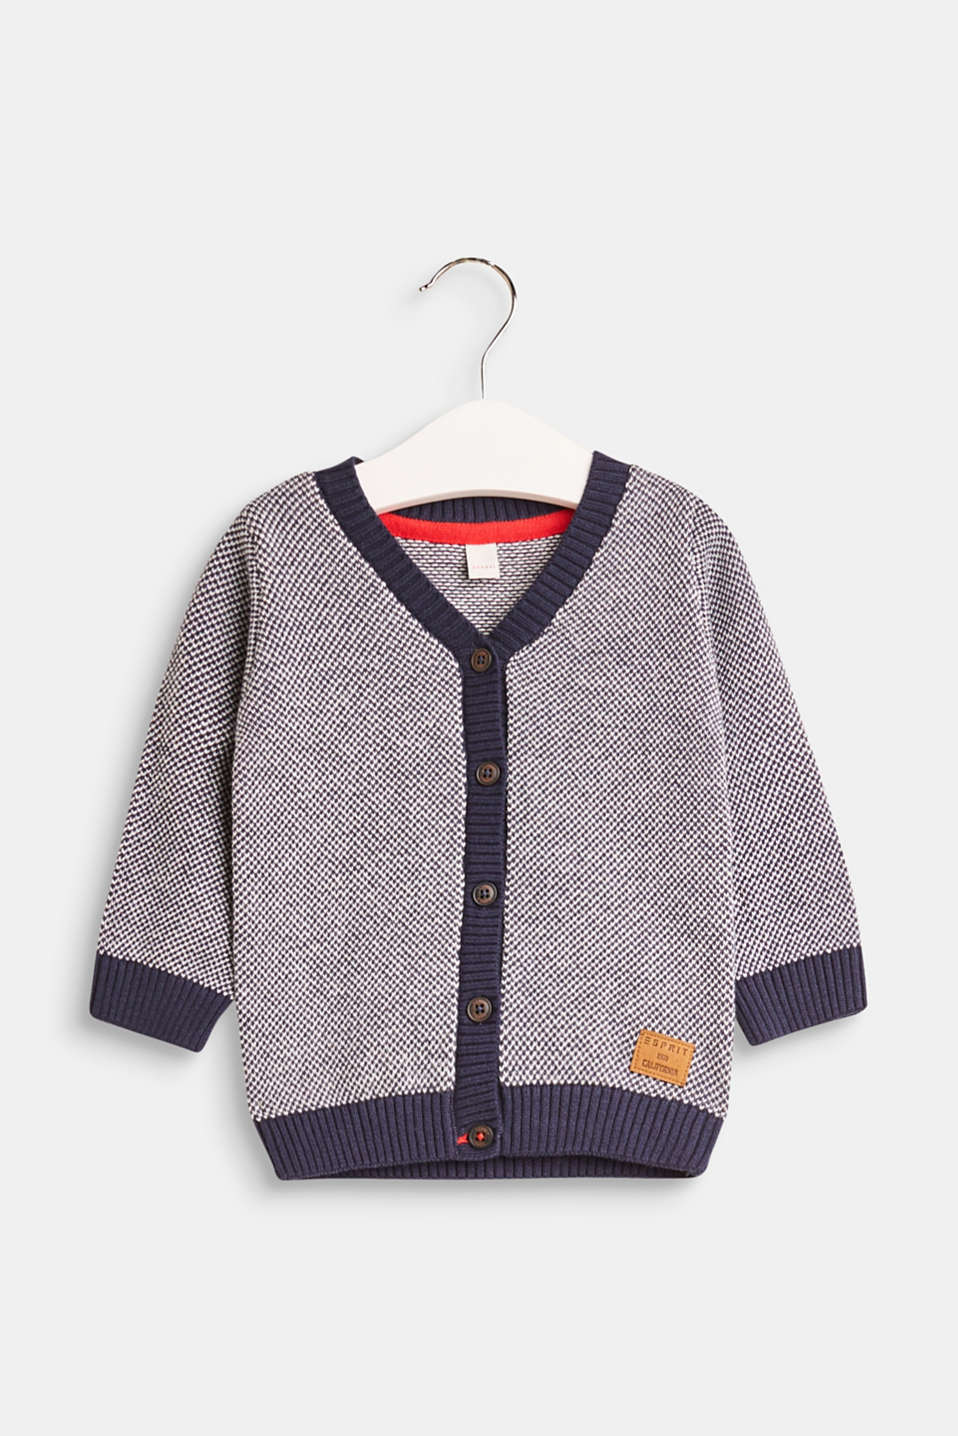 Esprit - Cardigan in two-tone knit fabric, 100% cotton